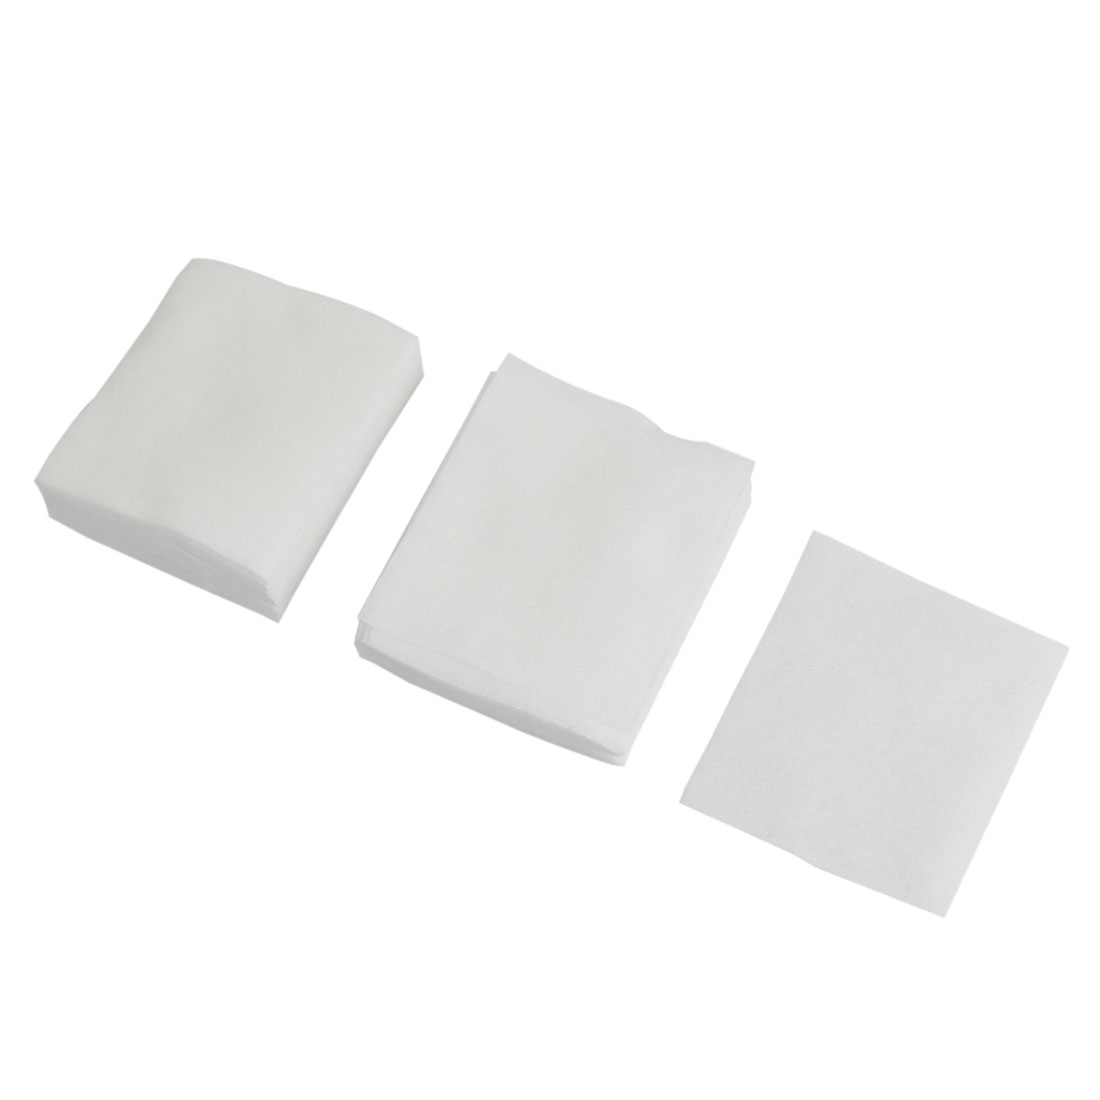 Womens White Soft Rectangle 71 x 61mm Facial Puff Cosmetic Pad 100 Pcs